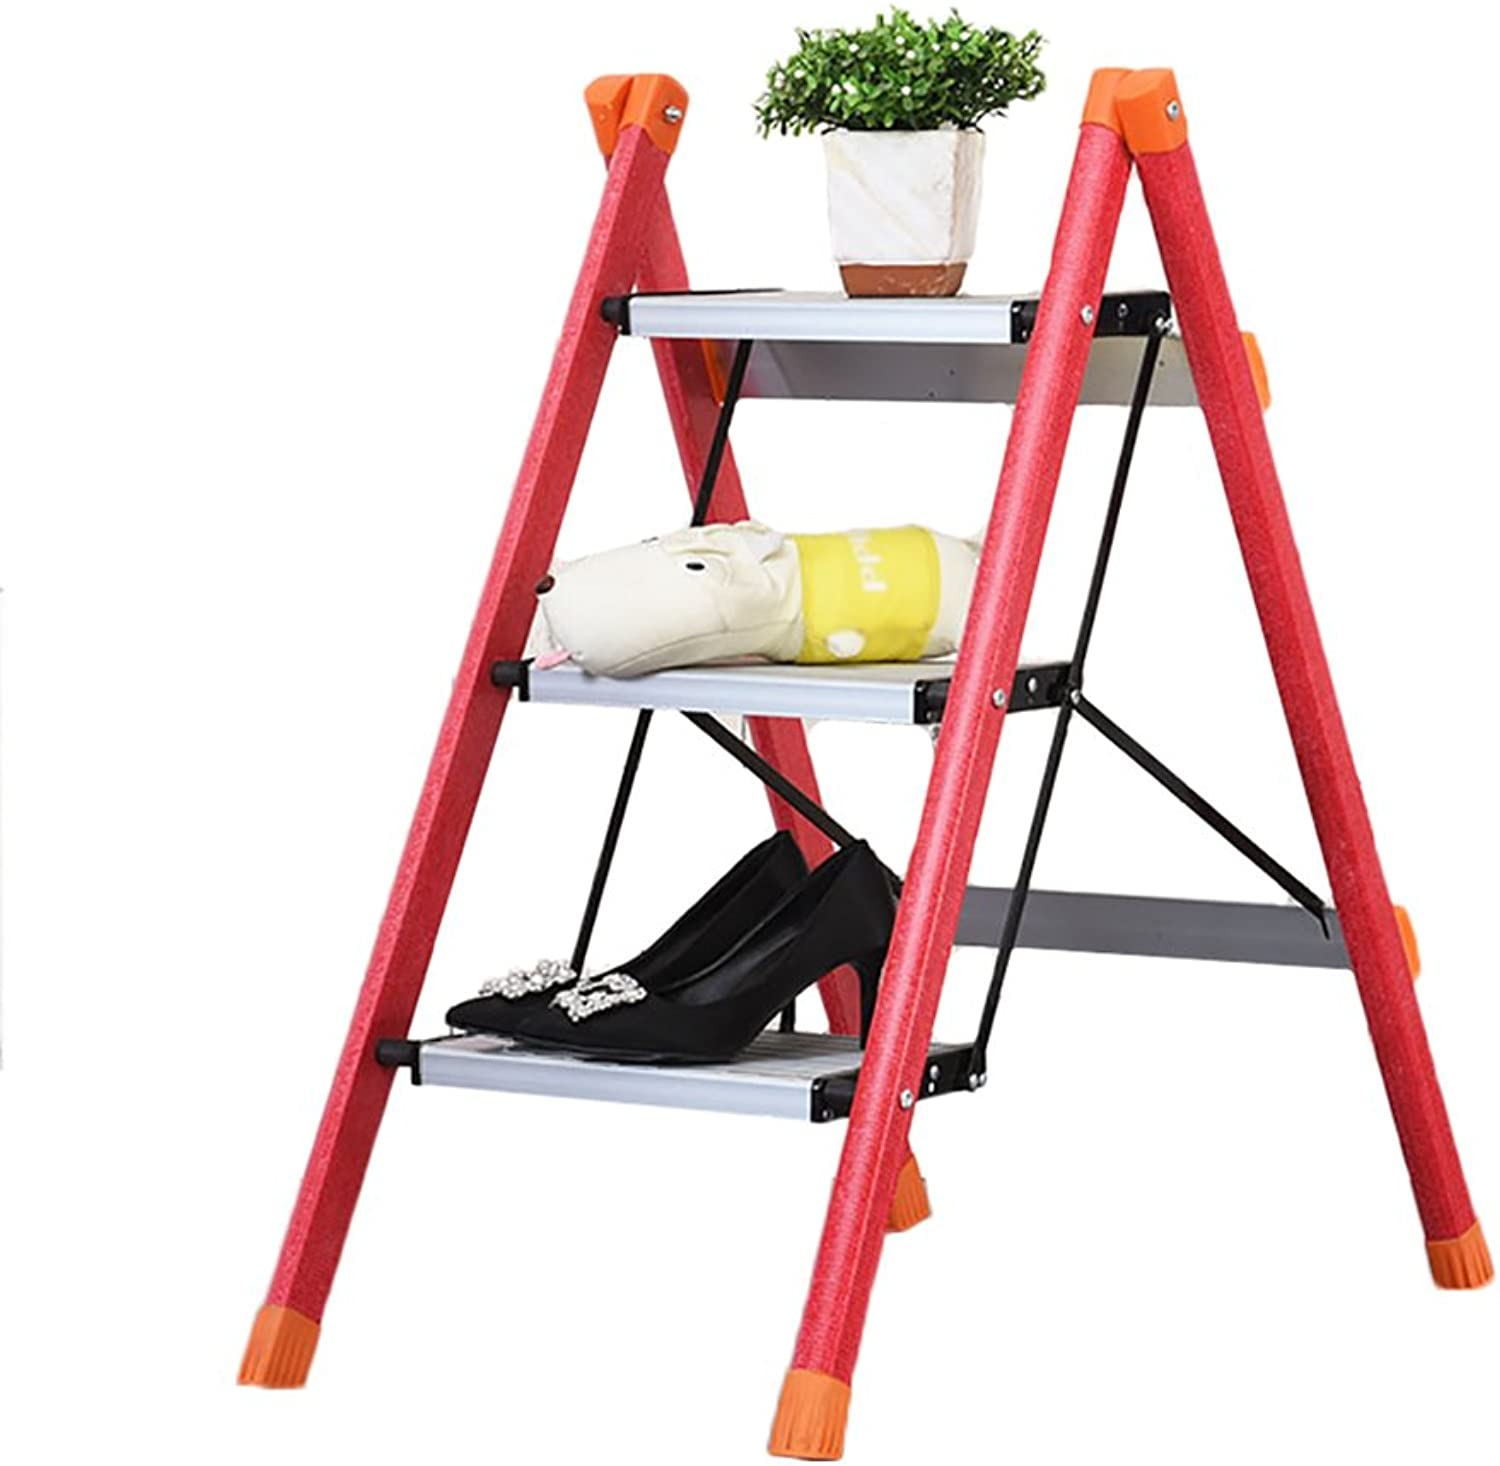 LXJYMX Home Folding Ladder Insulation Ladder, Fiberglass Insulation Ladder, Three-Step Ladder Stool, Aluminum Alloy Pedal Ladder. Climbing Ladder